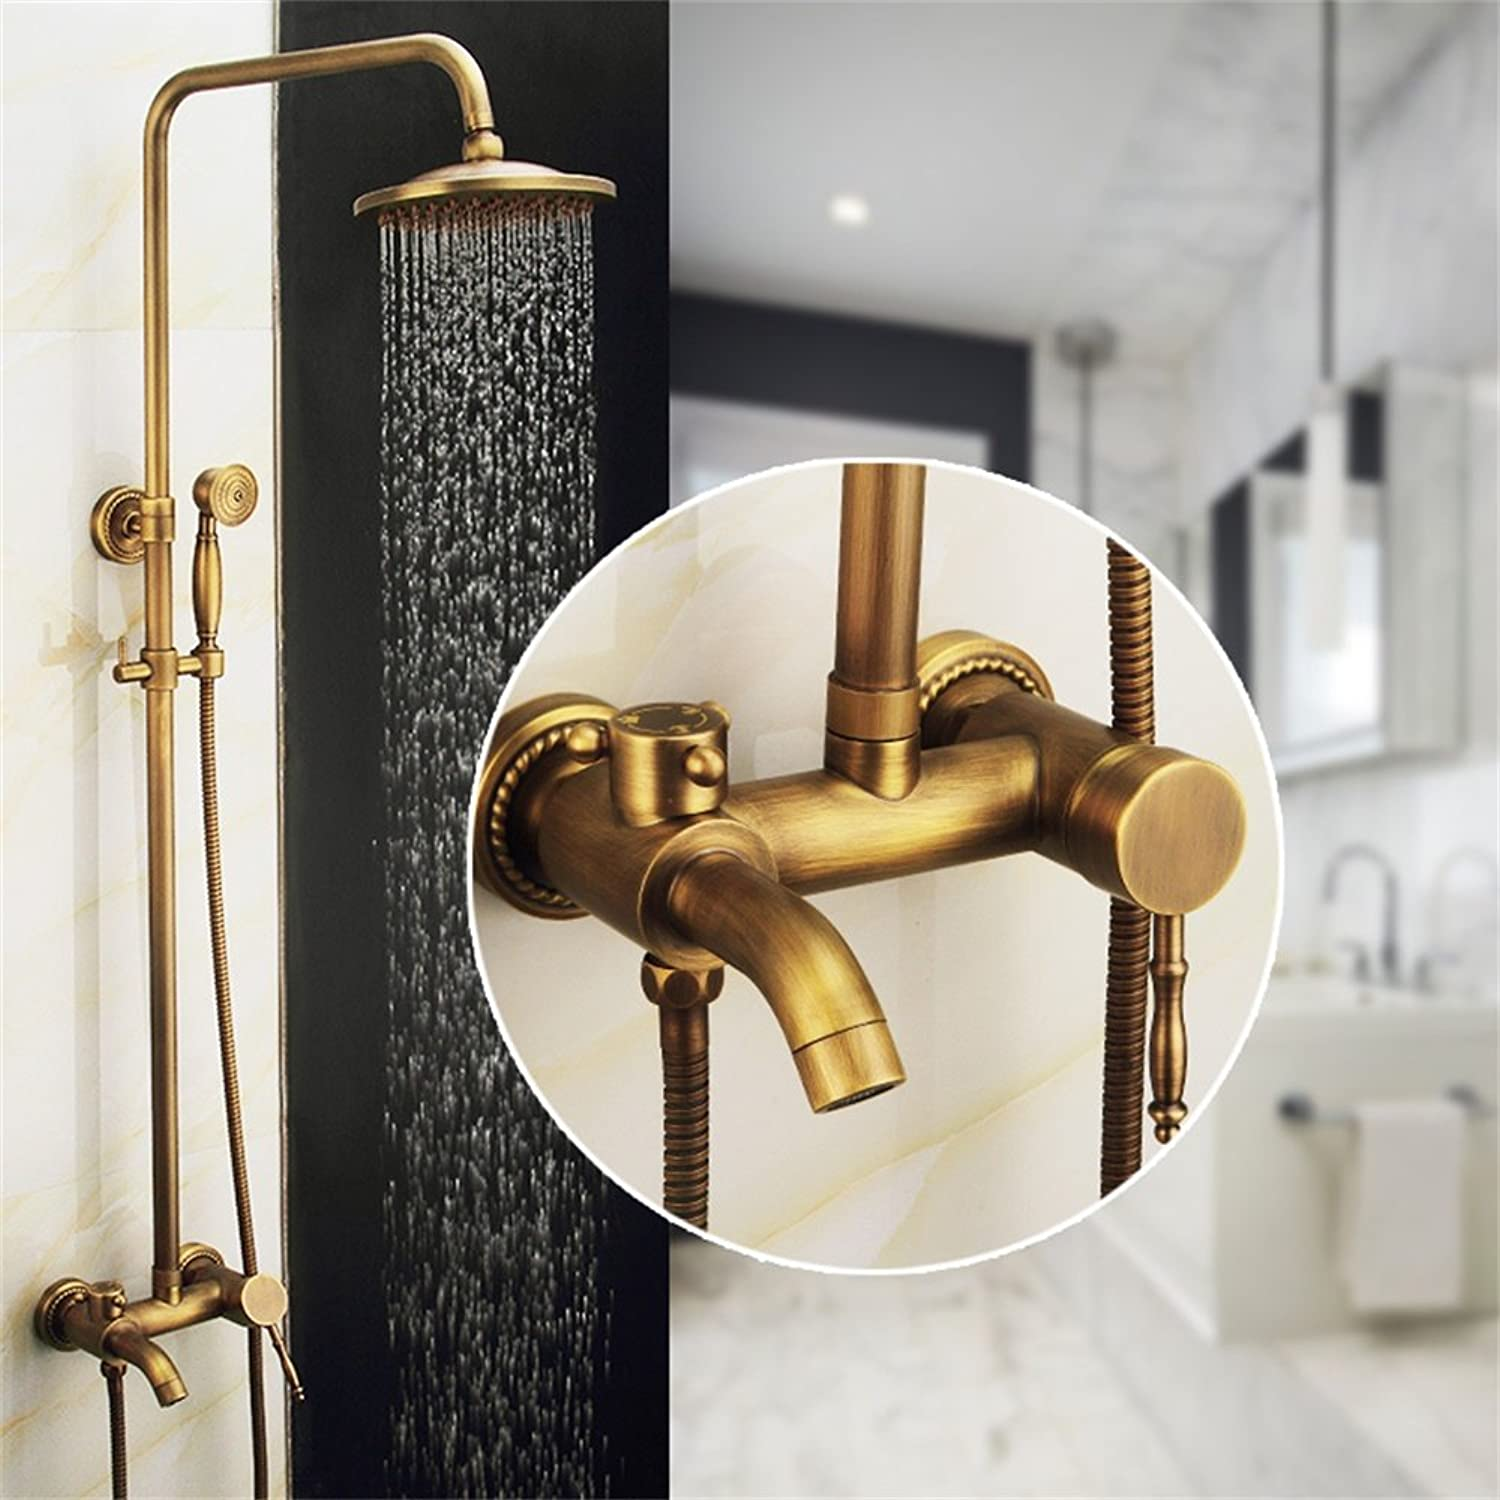 SMC shower set Antique Copper European Style Bathroom Toilet Lift Cooling & Hot Shower Set With Handheld Shower Head (color   A)